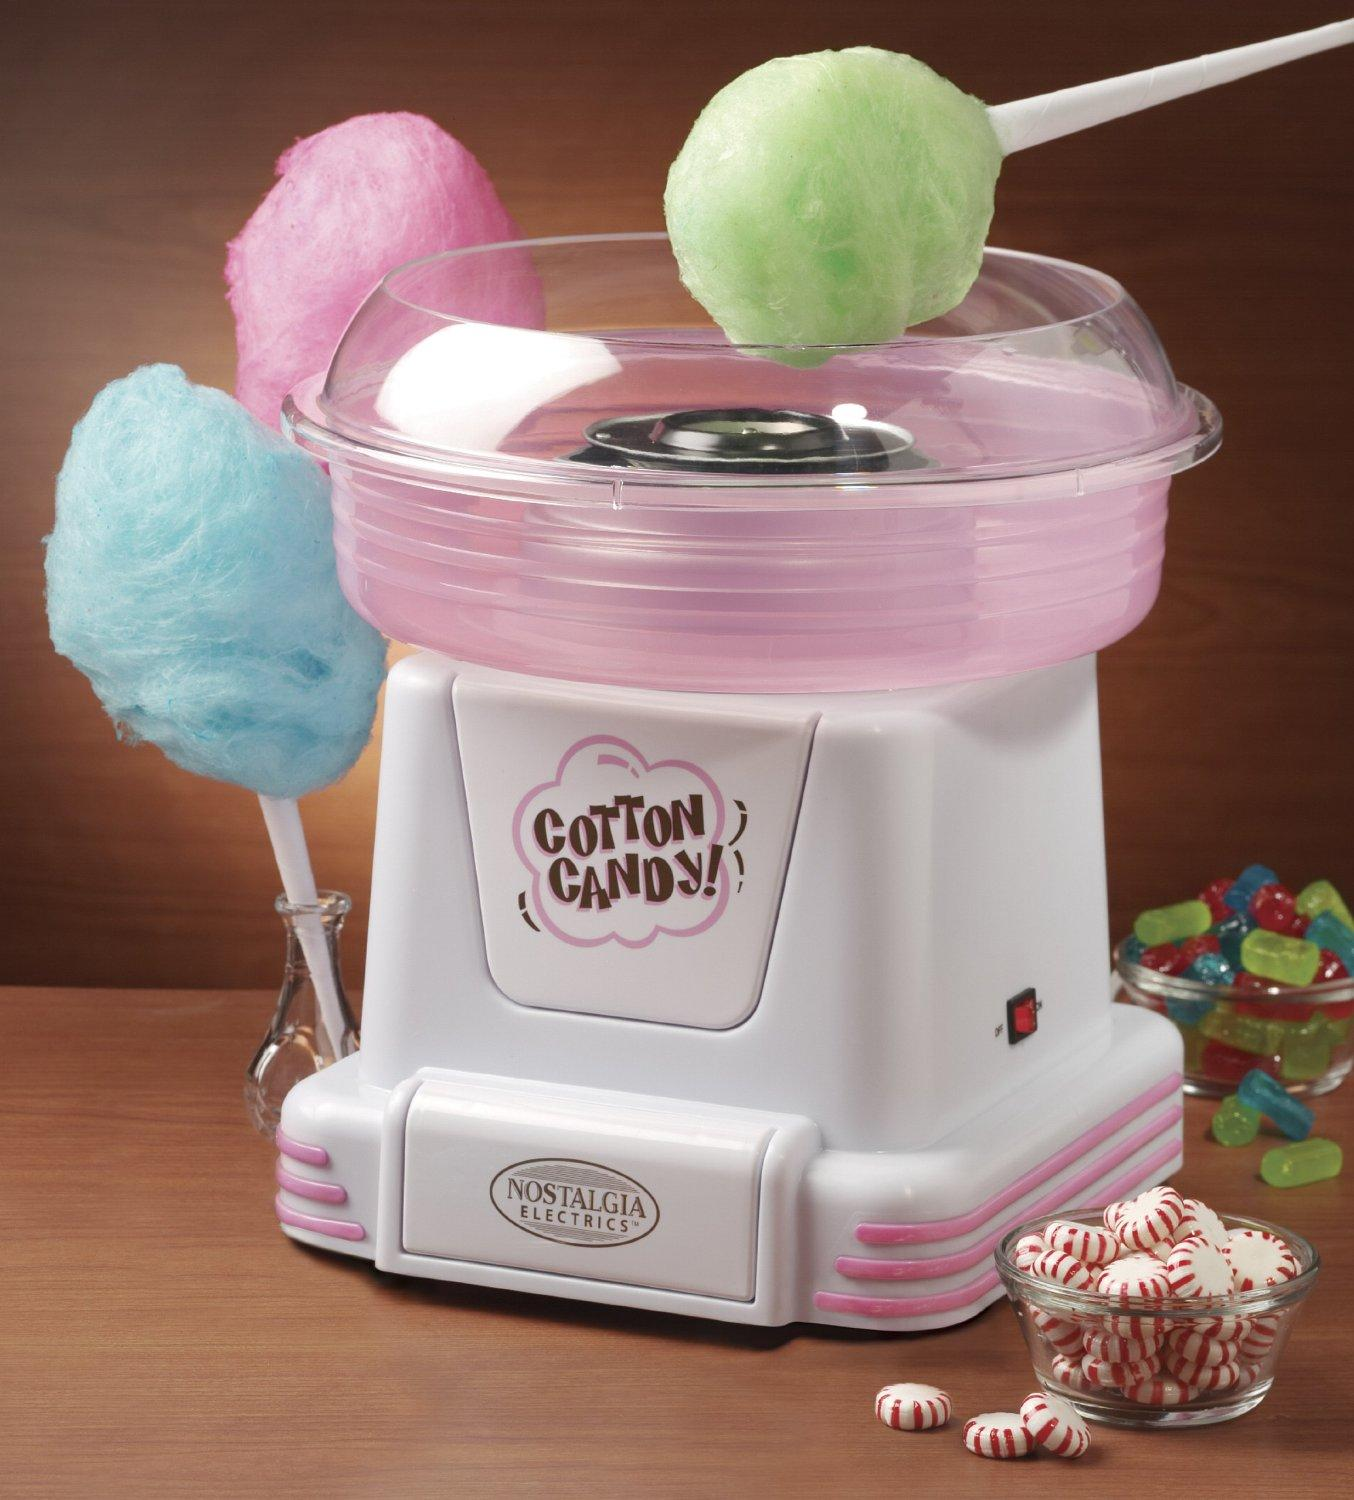 Nostalgia Electrics - Hard Candy Cotton Candy Maker